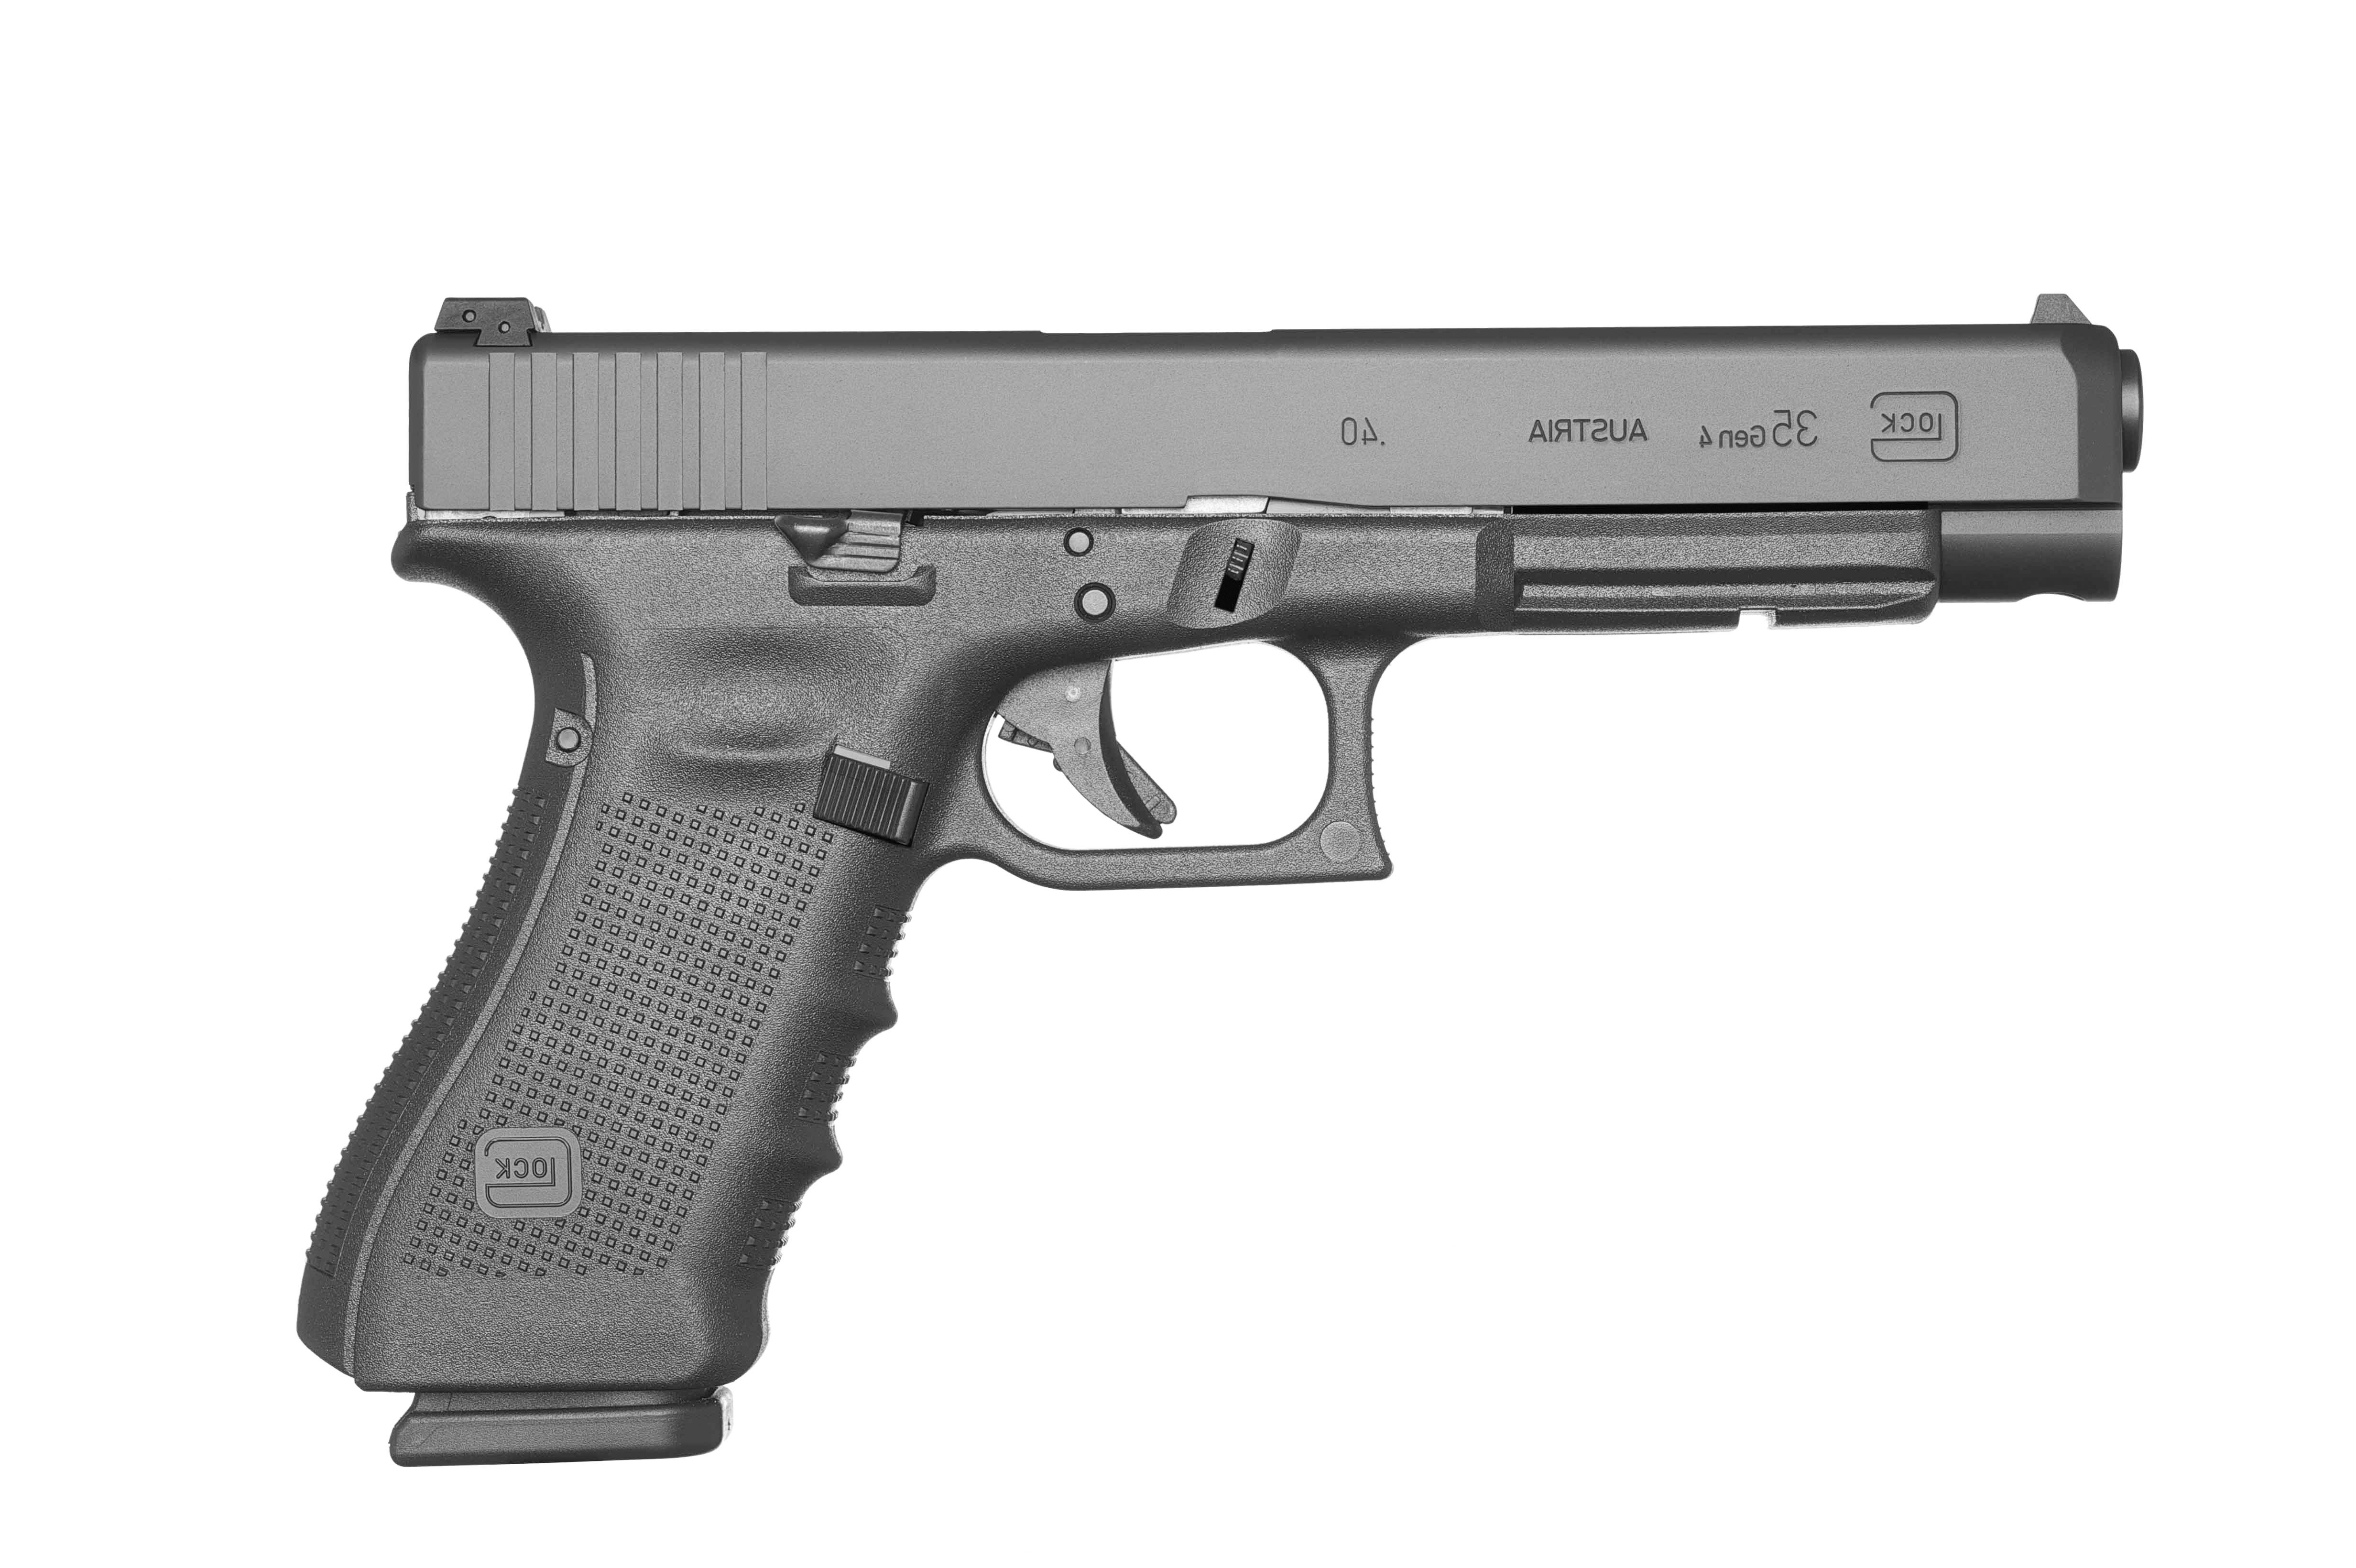 Faustfeuerwaffen Professional Arms Webshop